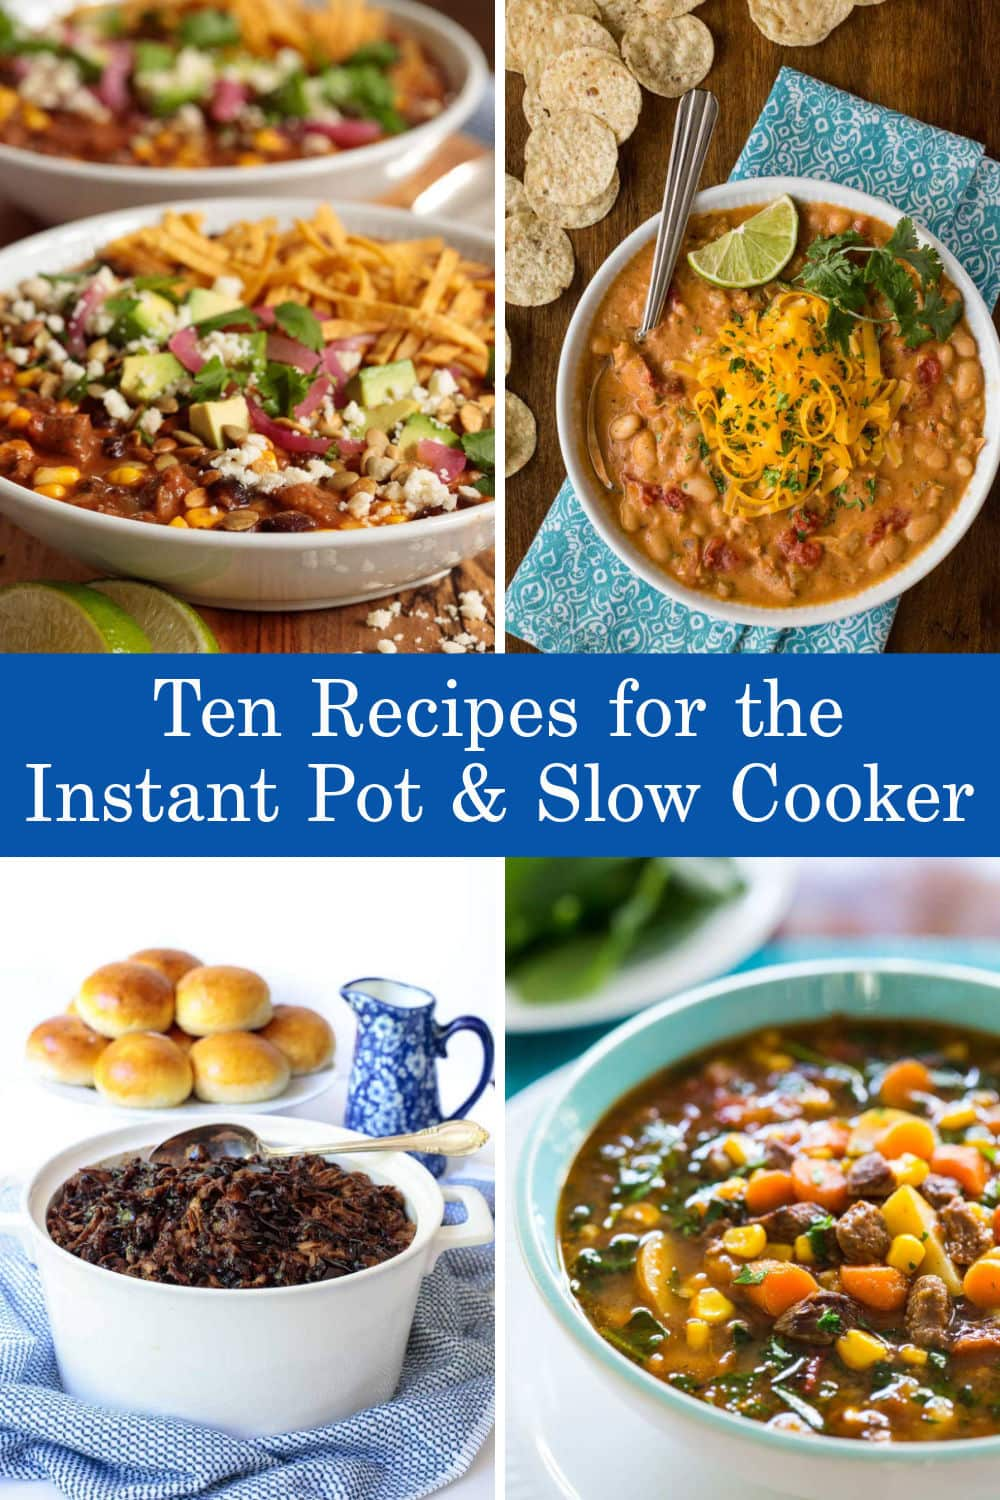 Instant Pot and Slow Cooker Meals - Easy Enough for Everyday, Delicious Enough for Entertaining!